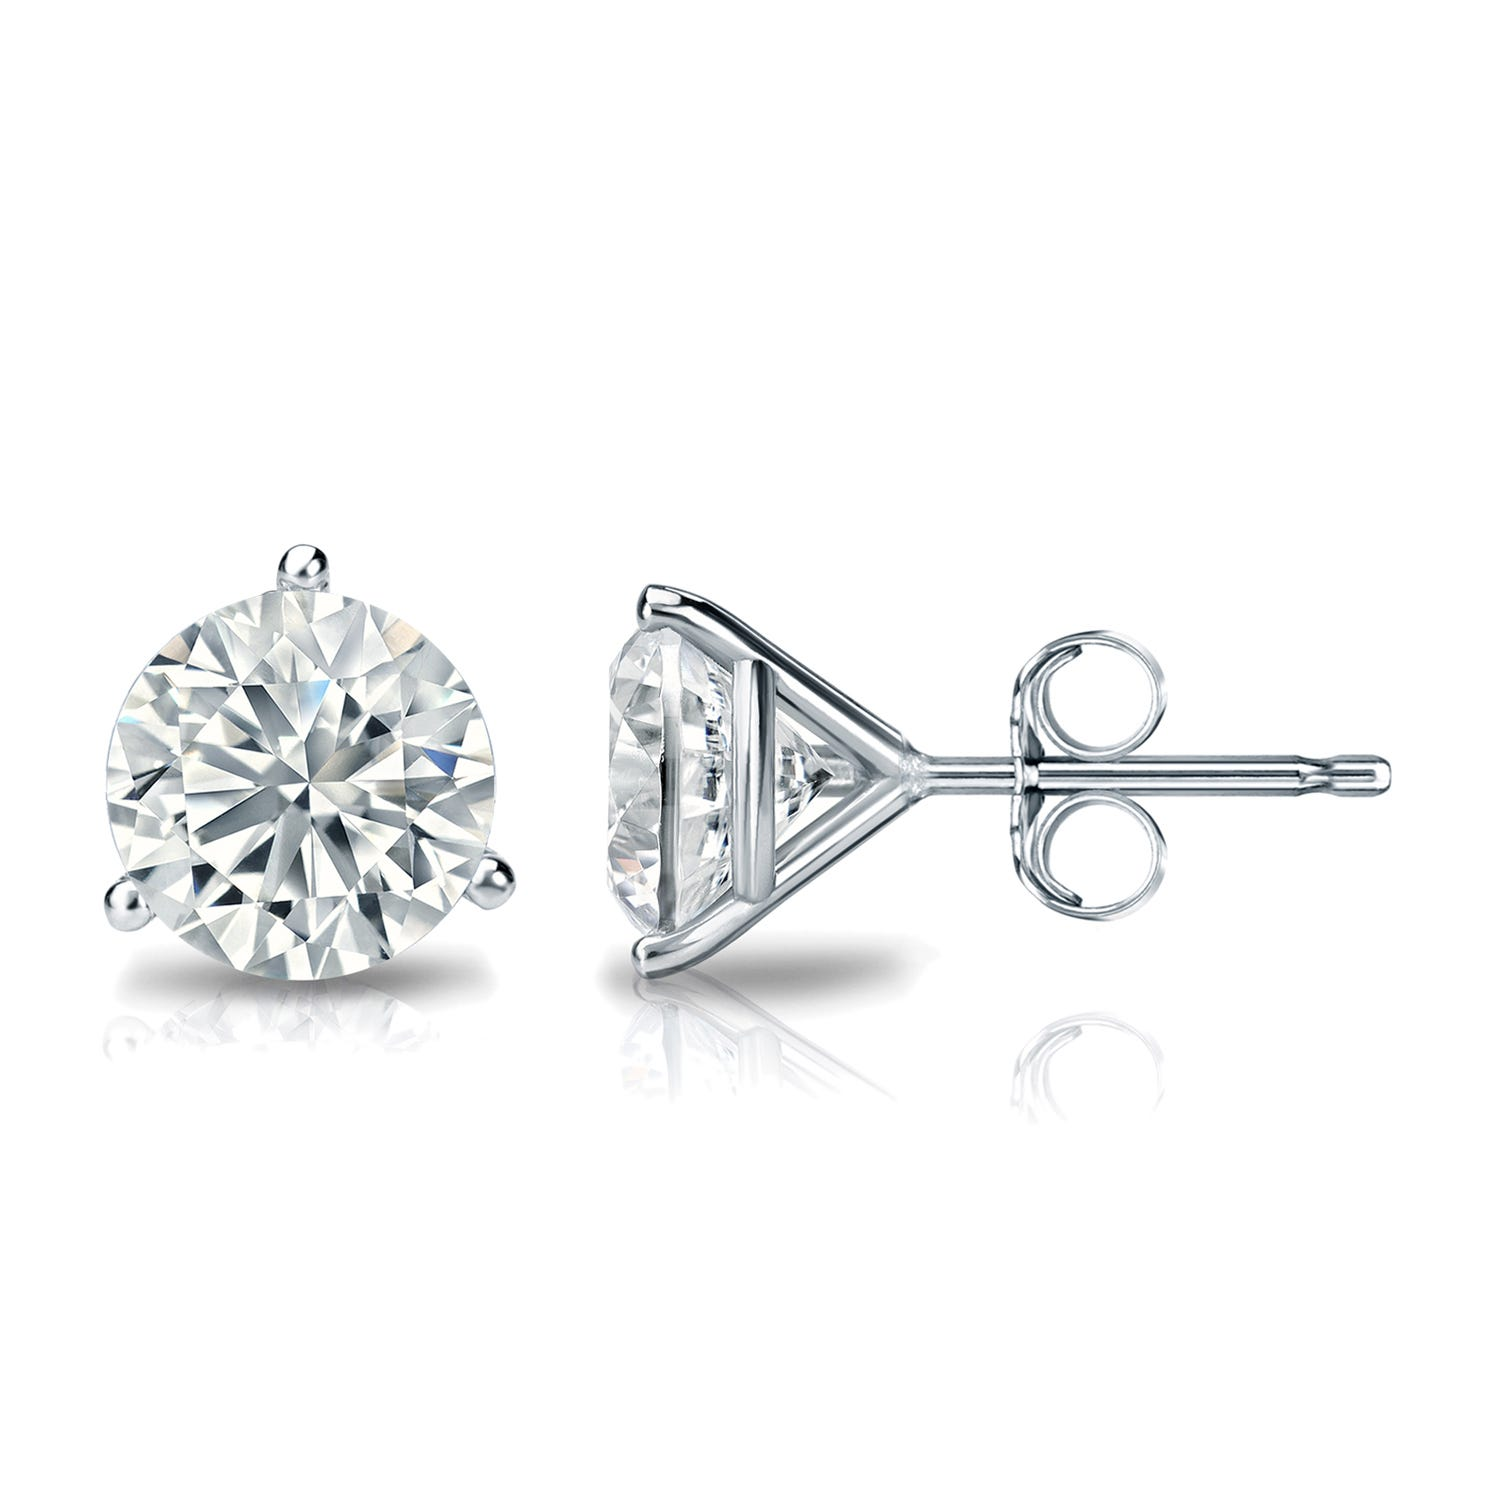 1-1/2 CTTW Round Diamond Solitaire Stud Earrings IJ VS2 in 14K White Gold IGI Certified 3-Prong Setting